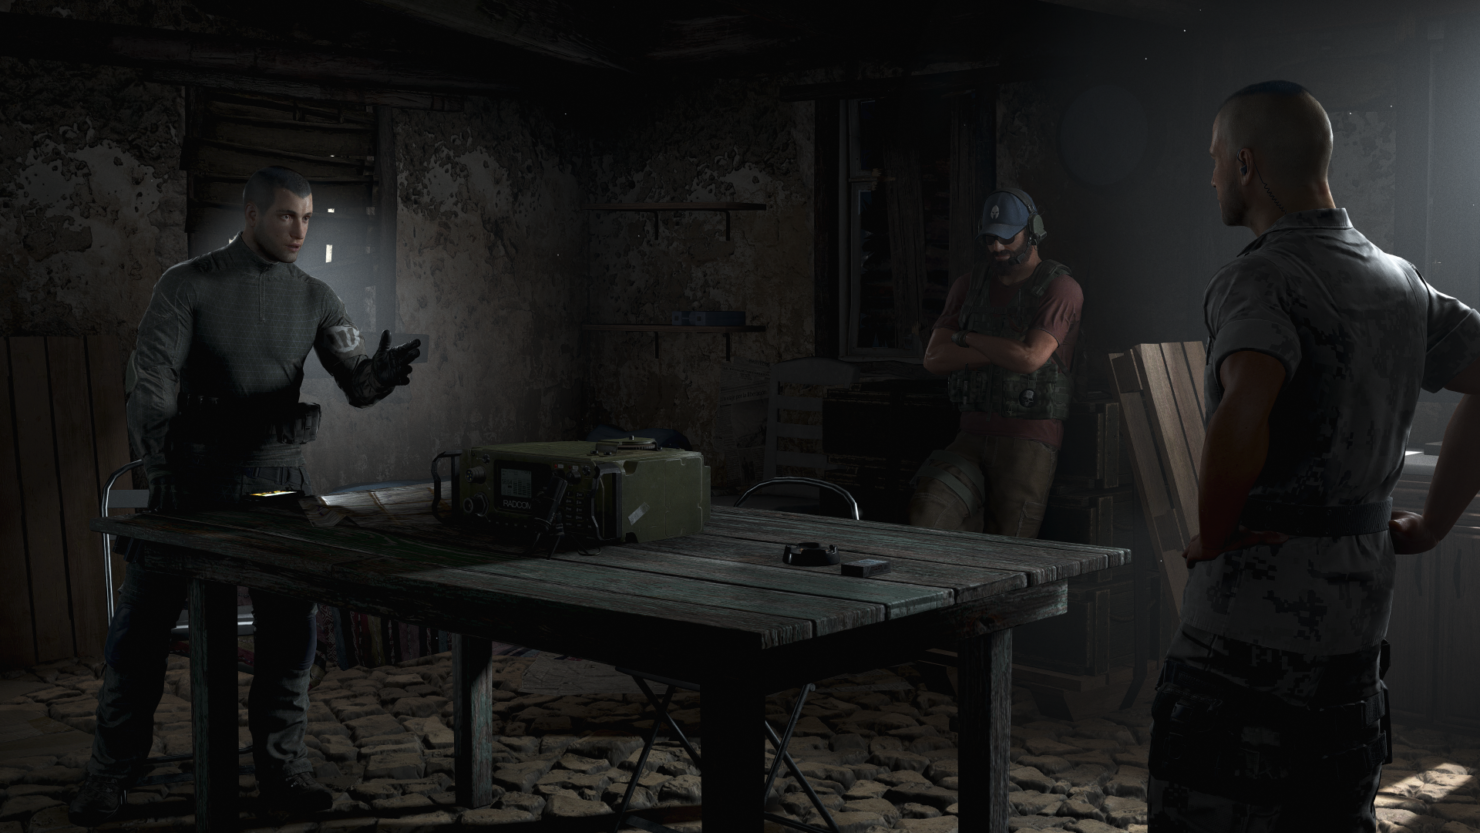 grw_screen_spec_ops_3_pve_reveal_cinematic_181210_6pm_cet_1544454814